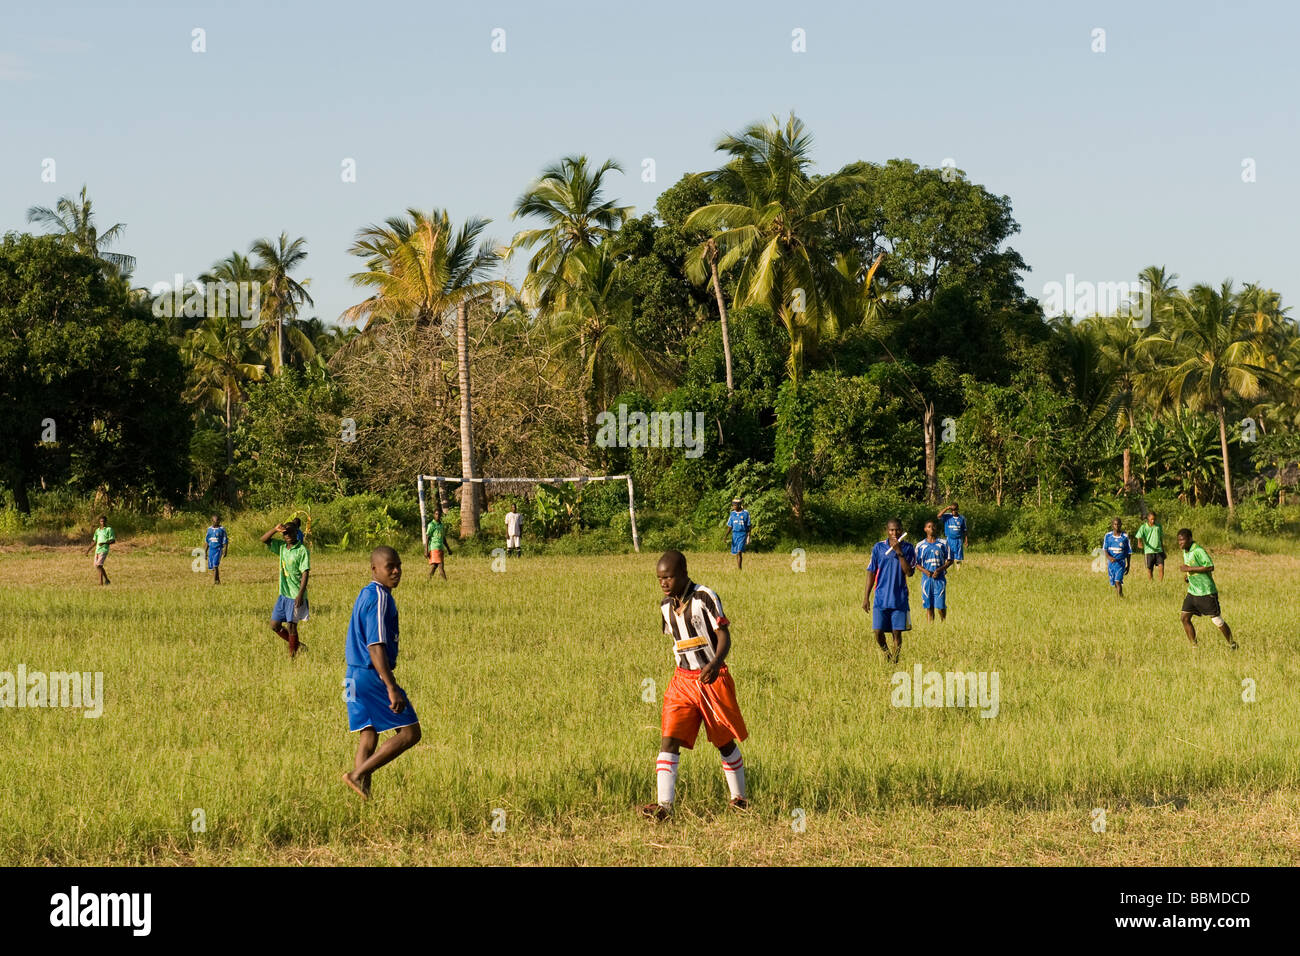 Football players in a match Quelimane Mozambique - Stock Image